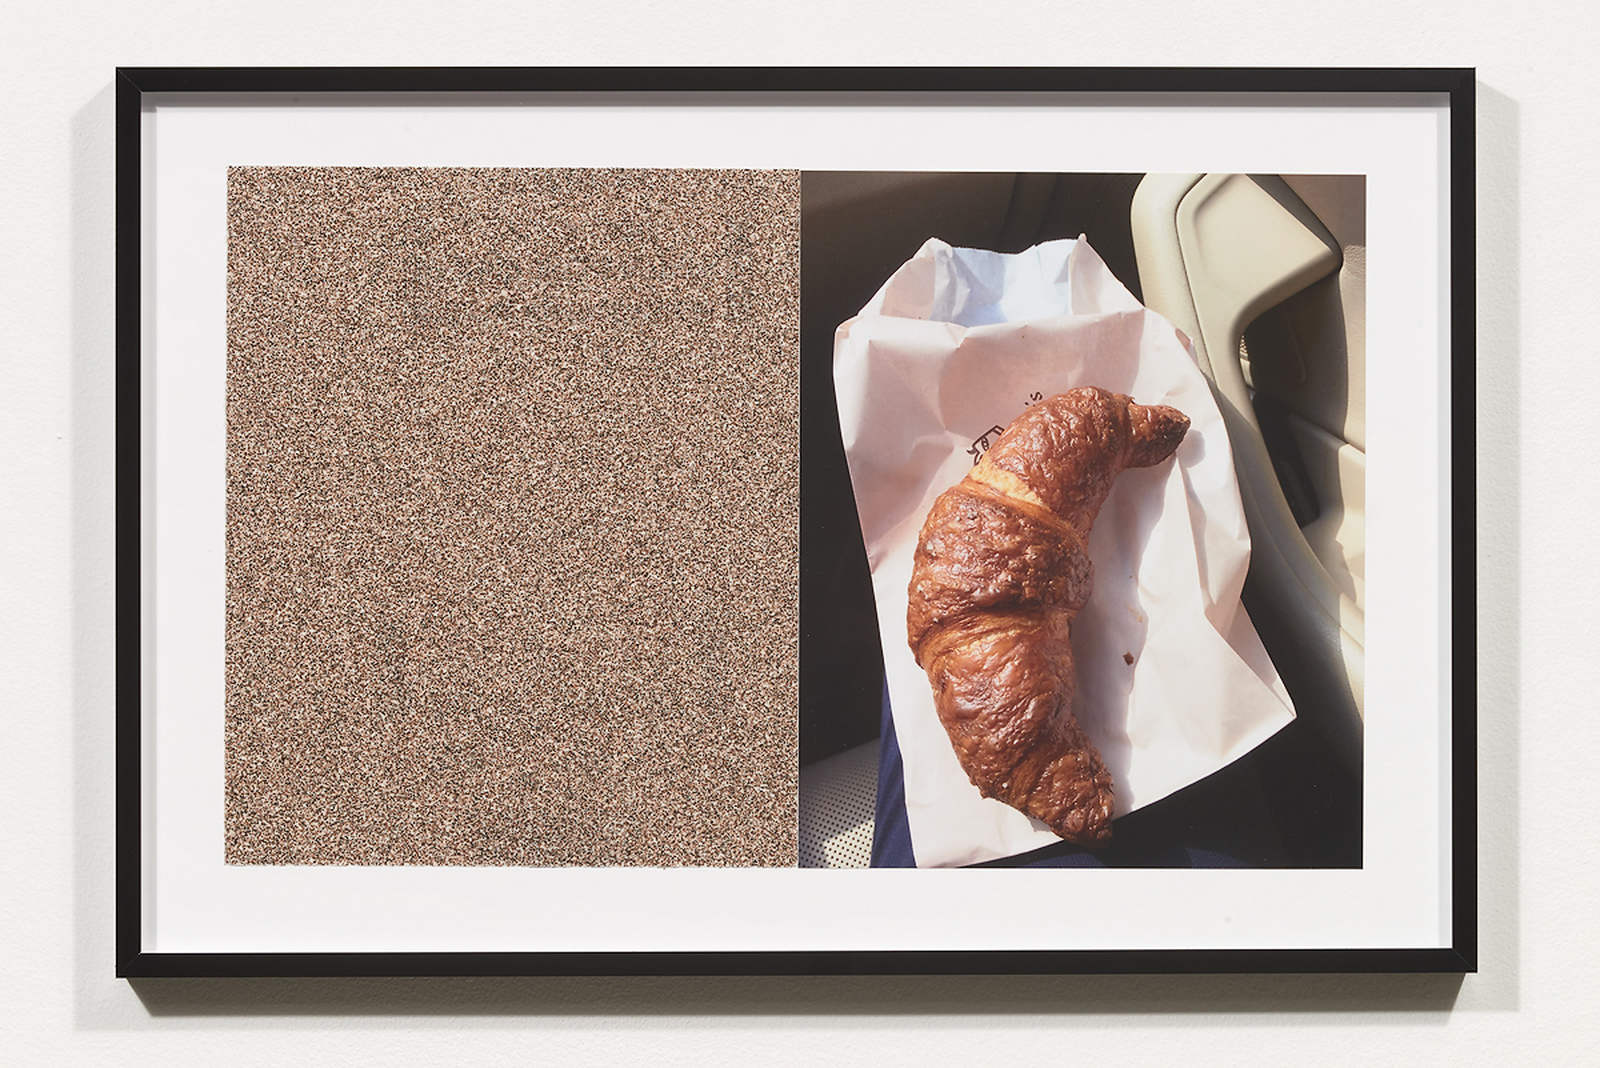 Wermers_Croissants & Architecture #11, 2016_C-print, sandpaper sheet, framed_14 3_8 x 21 1_2 in_NW00052PG